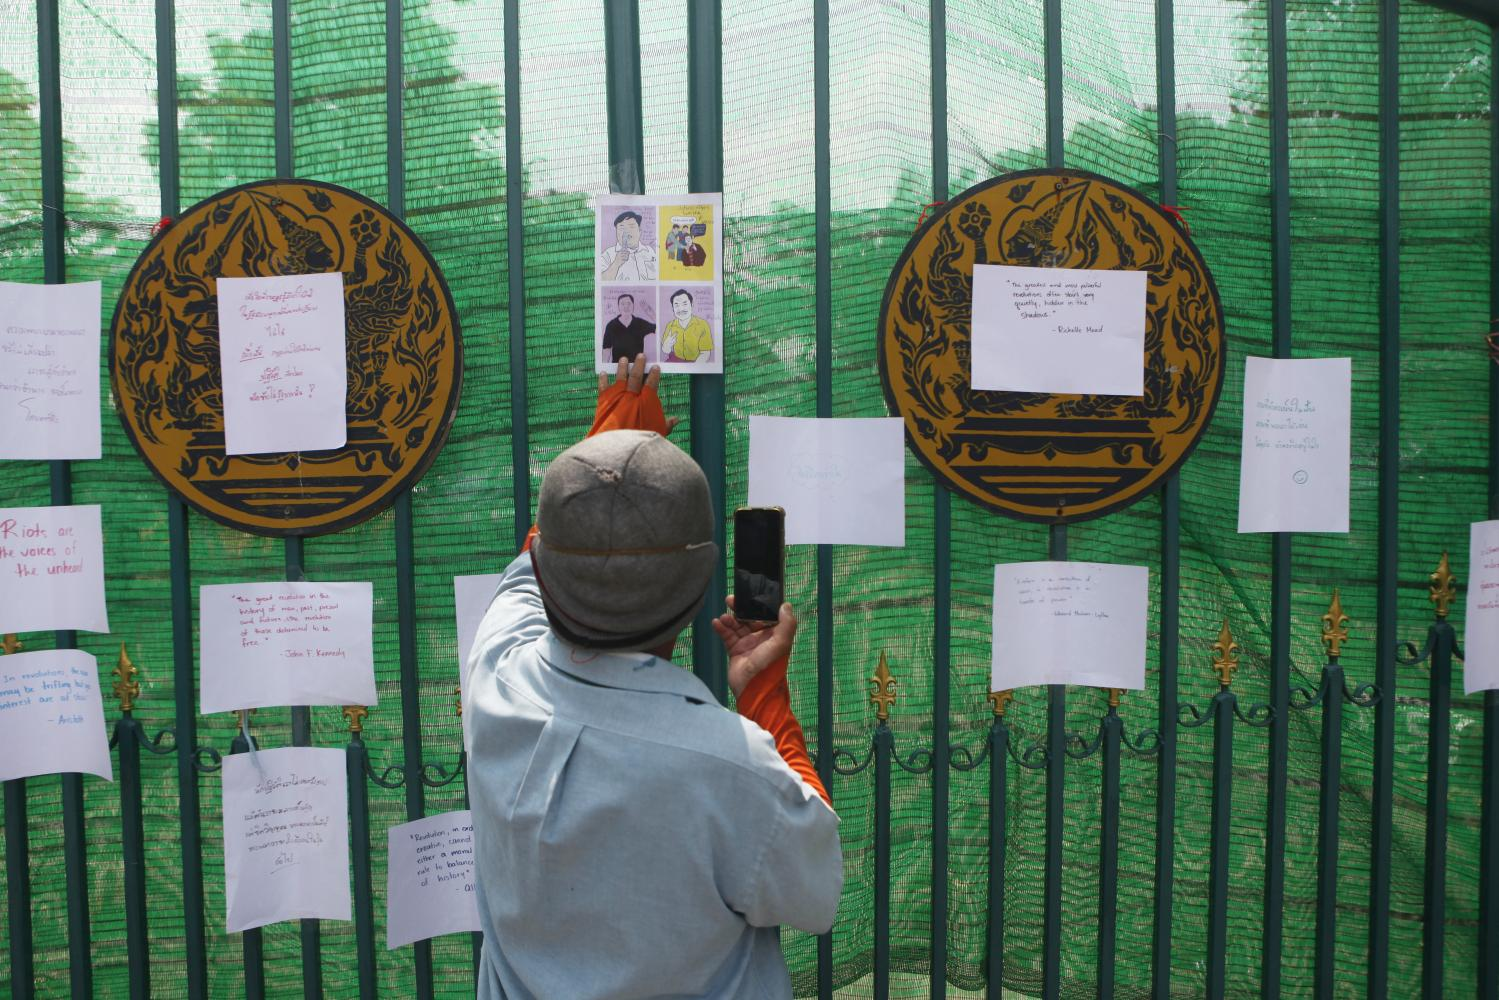 A man takes a photo of caricatures of four detained protest leaders, including Parit 'Penguin' Chiwarak, who is reported to been passing bloody stools and has been taken to hospital to be put on an intravenous drip after the 46th day of his hunger strike.(Photo by Nutthawat Wicheanbut)